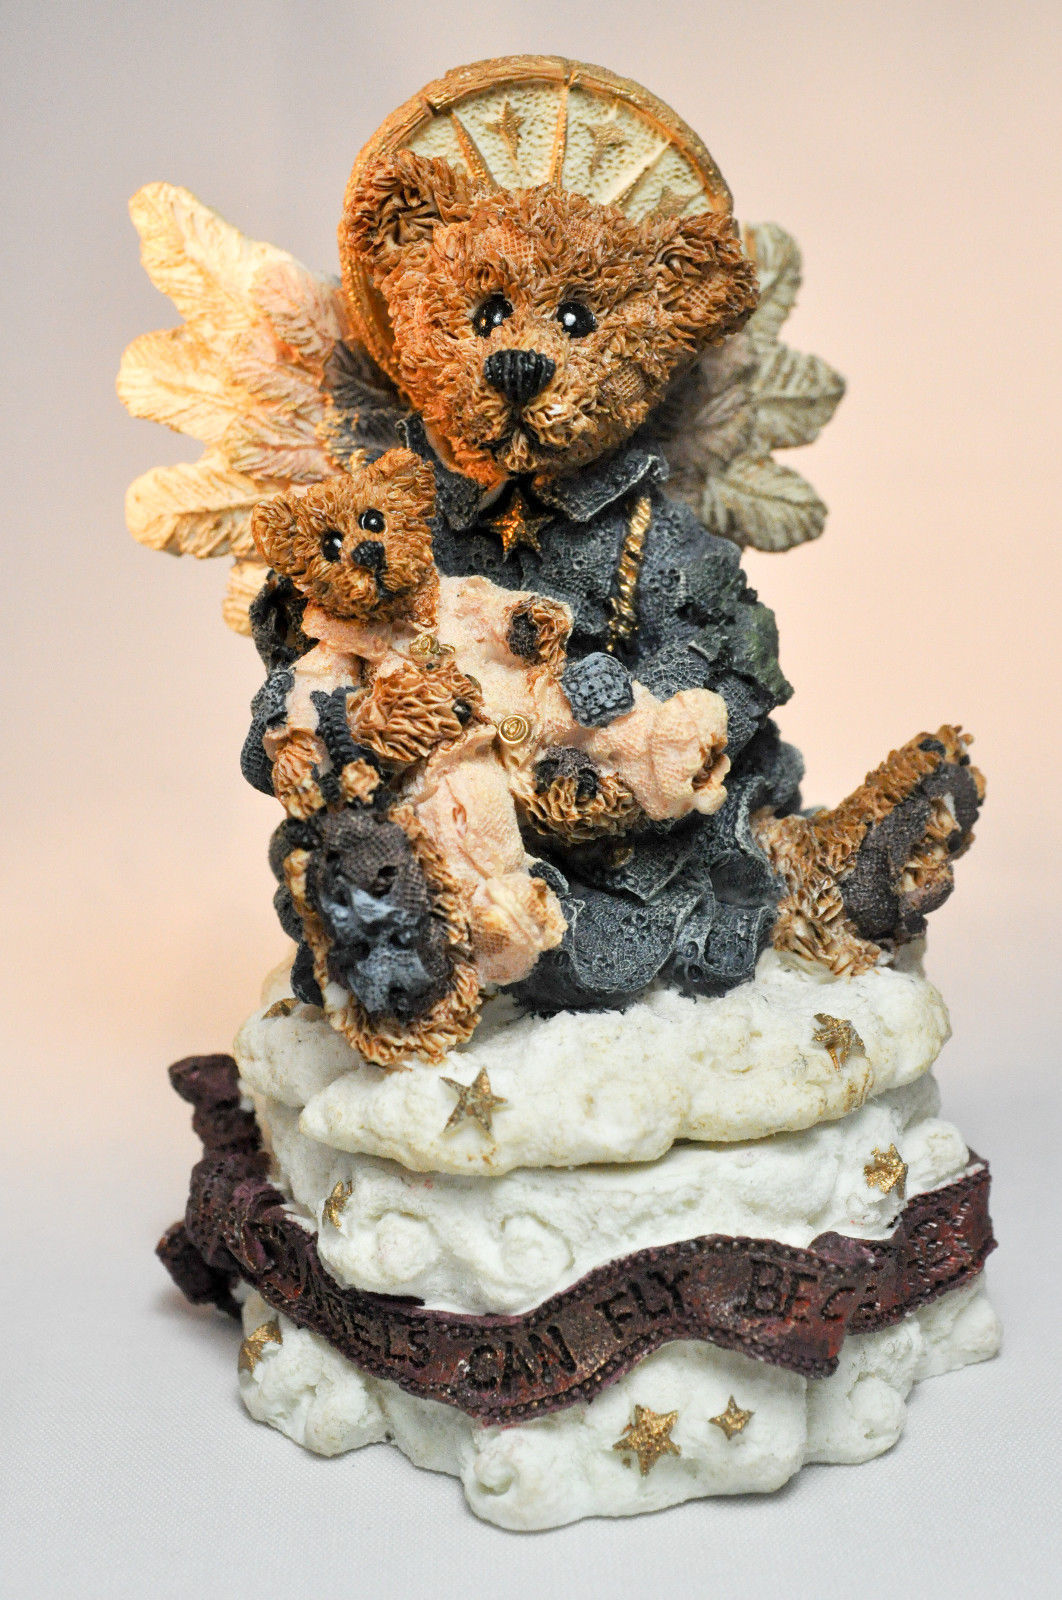 Boyds Bears: Angelica The Guardian - Style 2266 - First Edition 1E/230 - Trinket